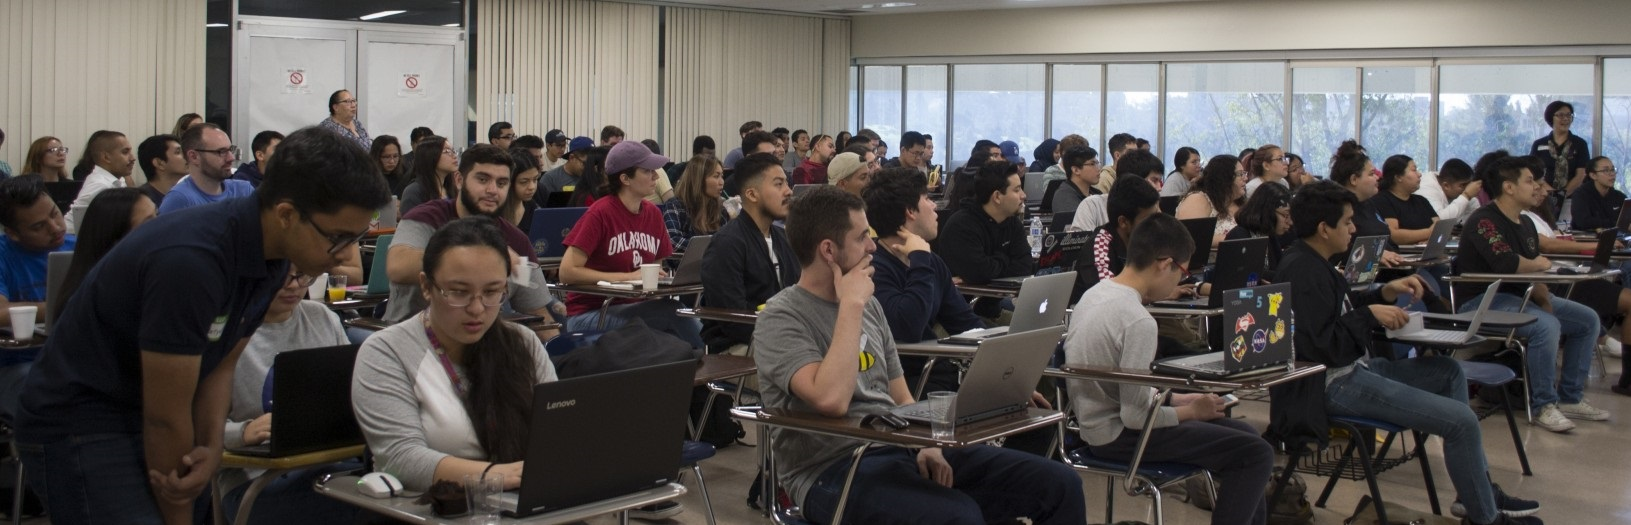 A large classroom of diverse students look towards the front of the room as they participate in Dr. Ye's summer workshop program.